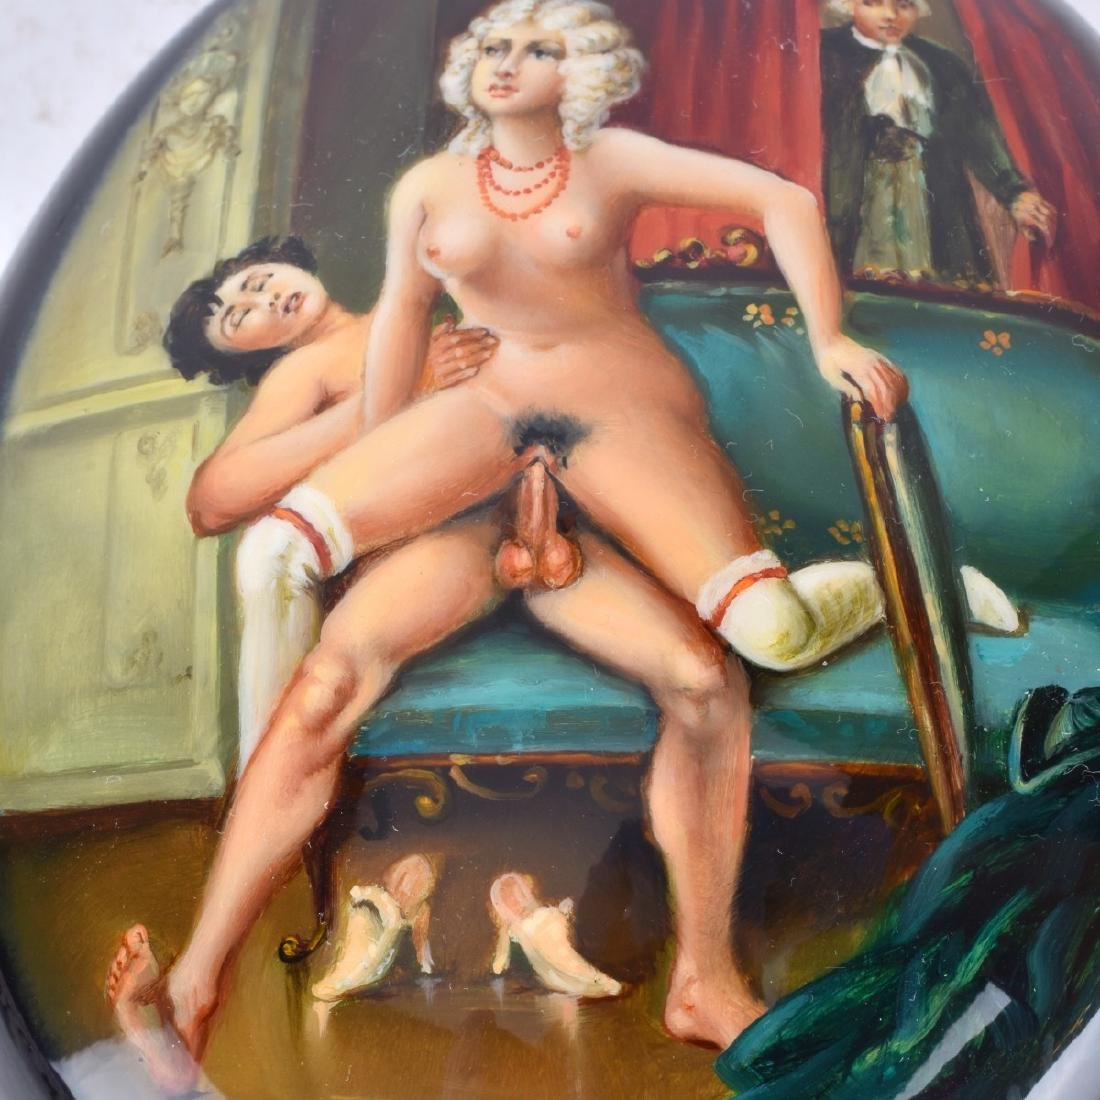 Russian Lacquer Hinged Box With Erotic Scene - 3